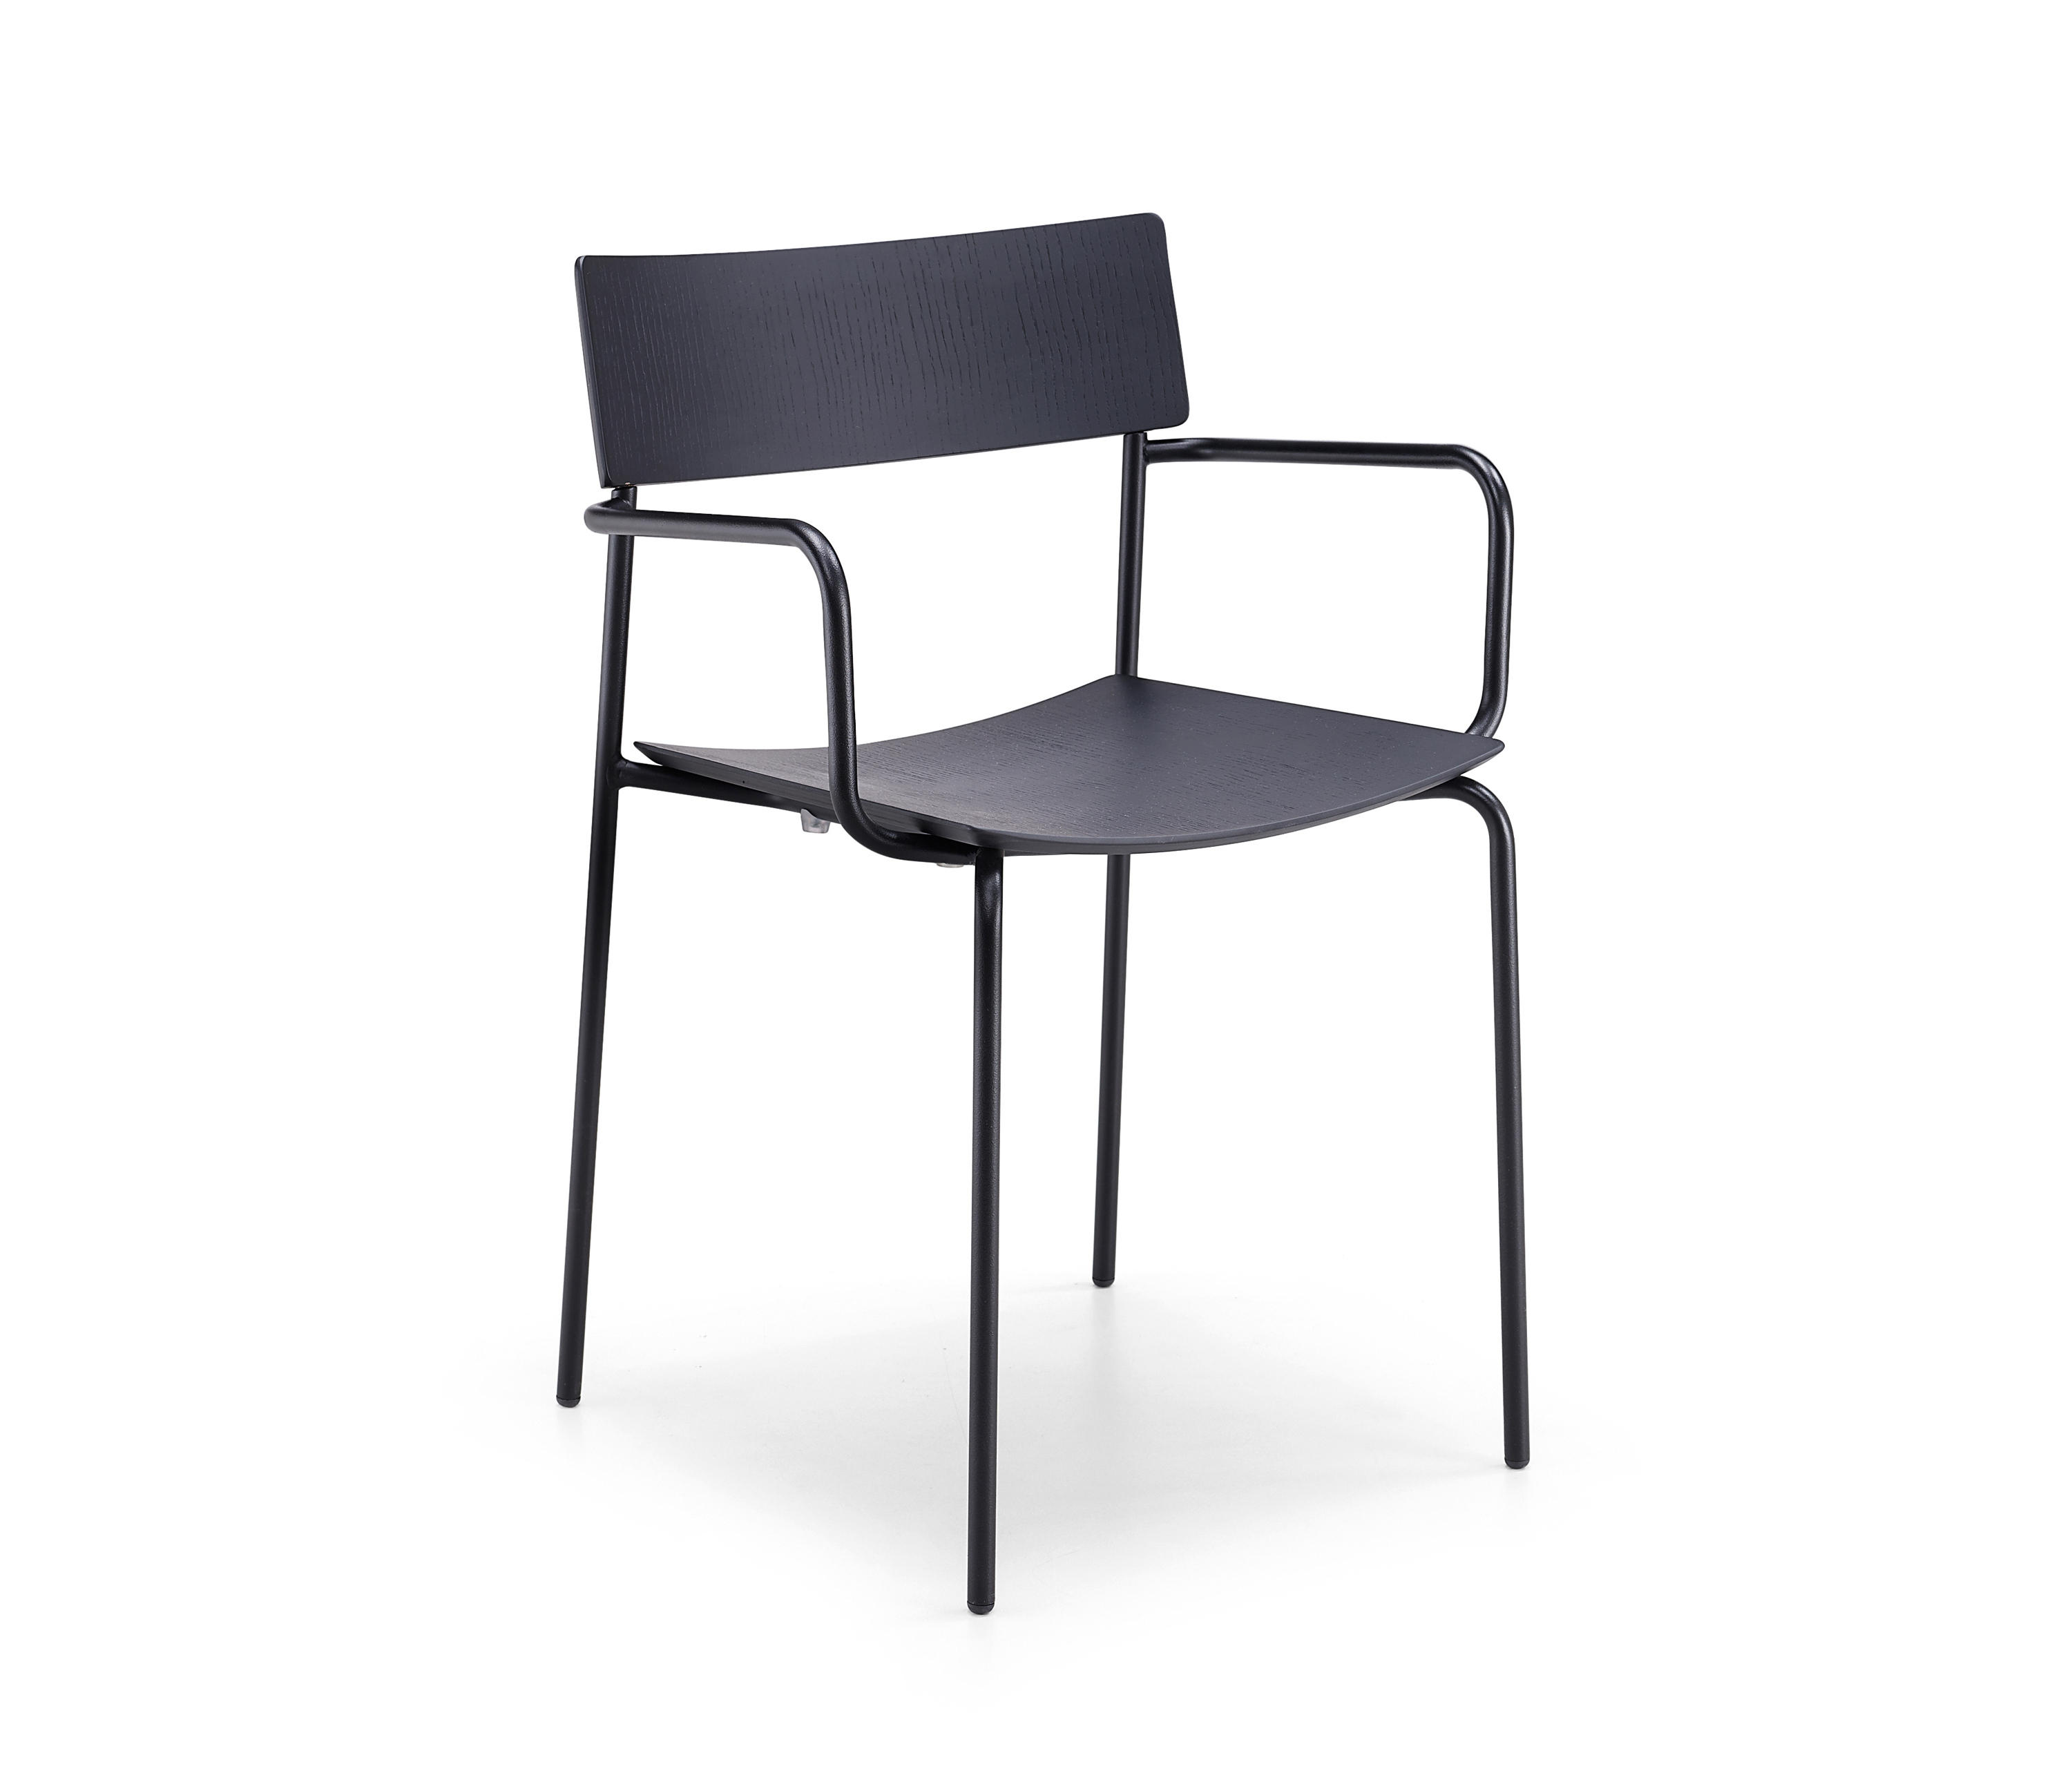 Mito P By Midj - Multipurpose Chairs